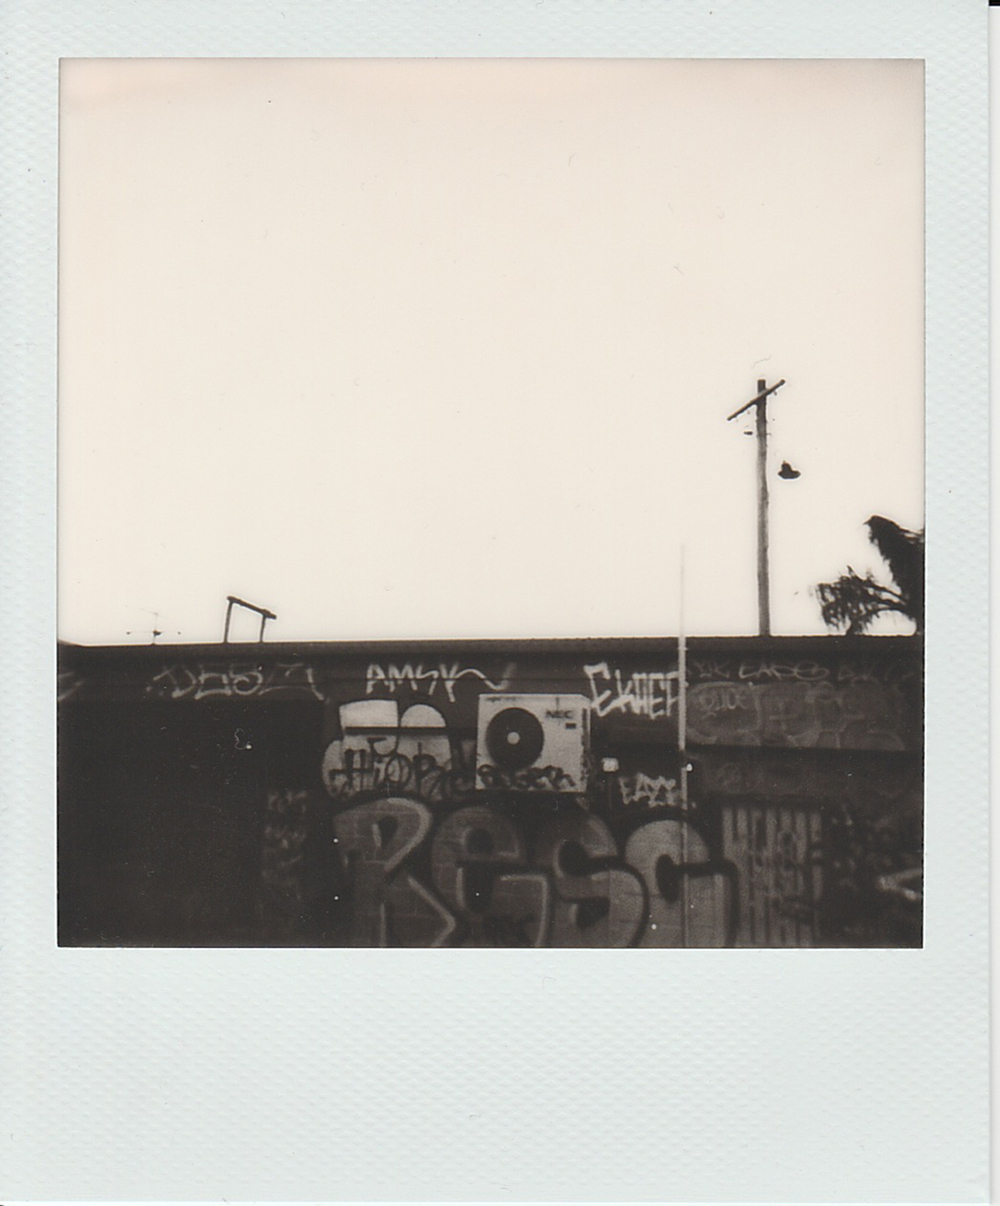 RESC / 600 Polaroid film